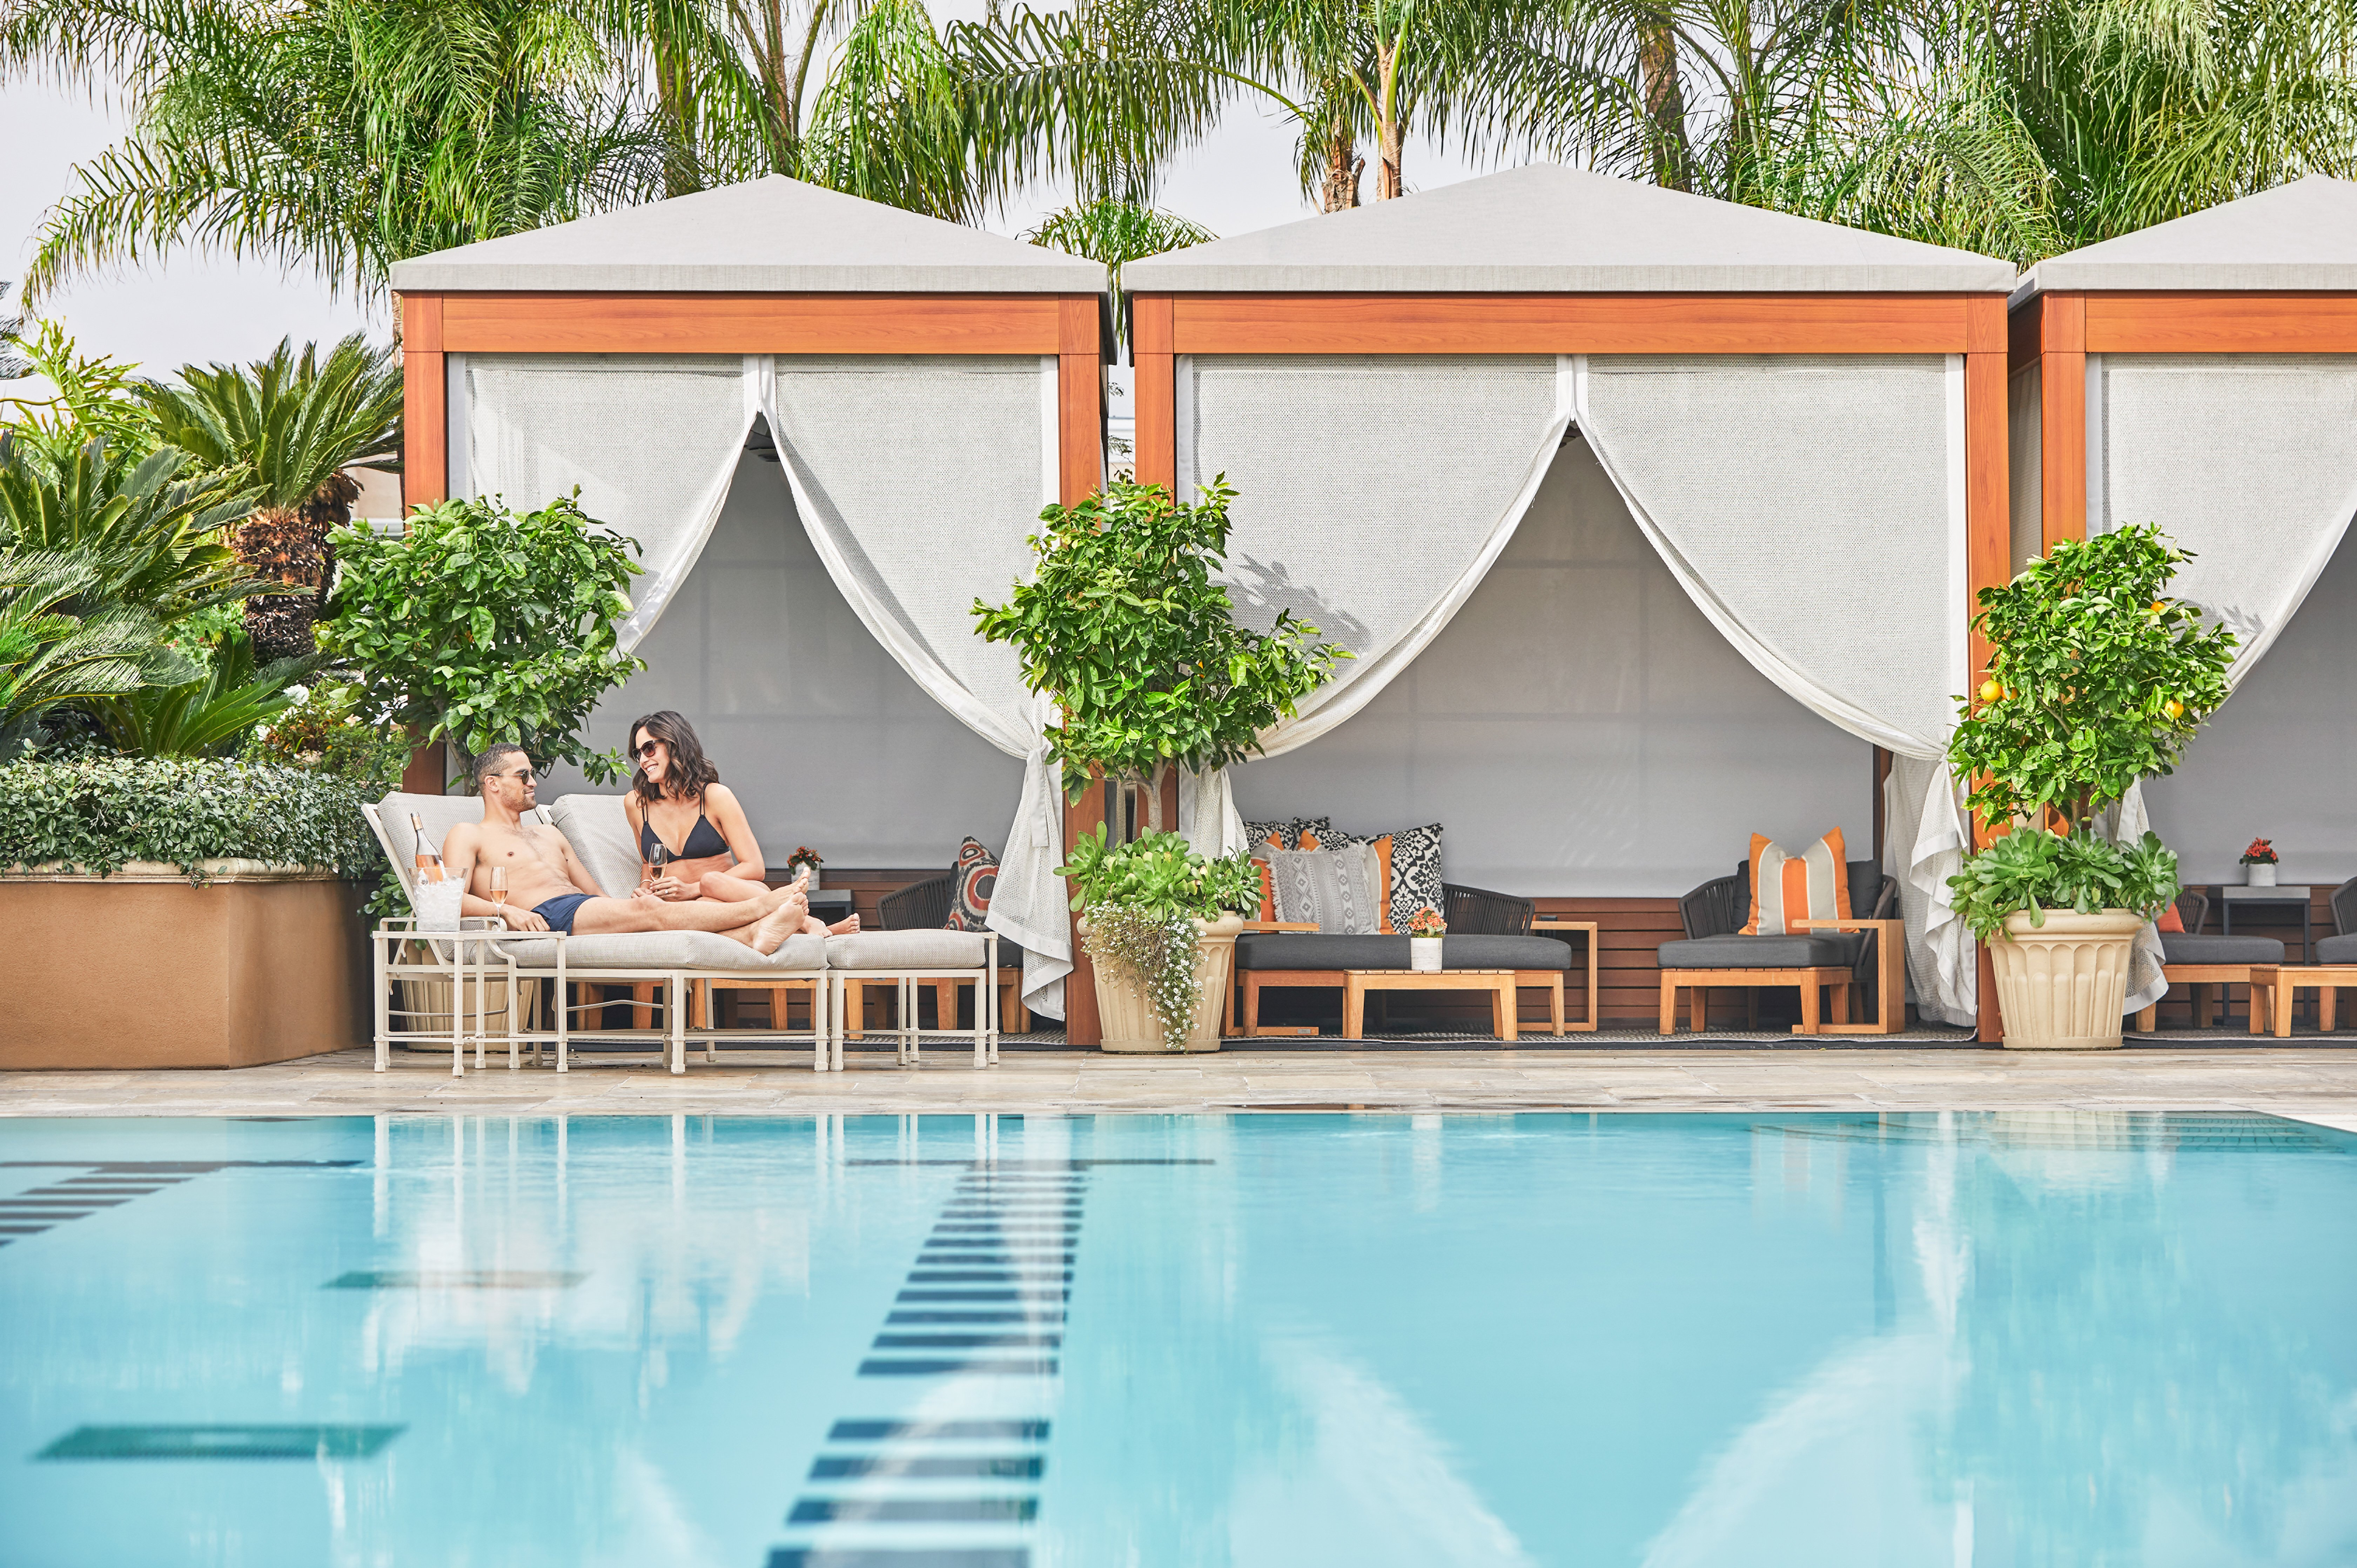 See why Four Seasons Hotel Los Angeles at Beverly Hills is one of our favorite places to stay.